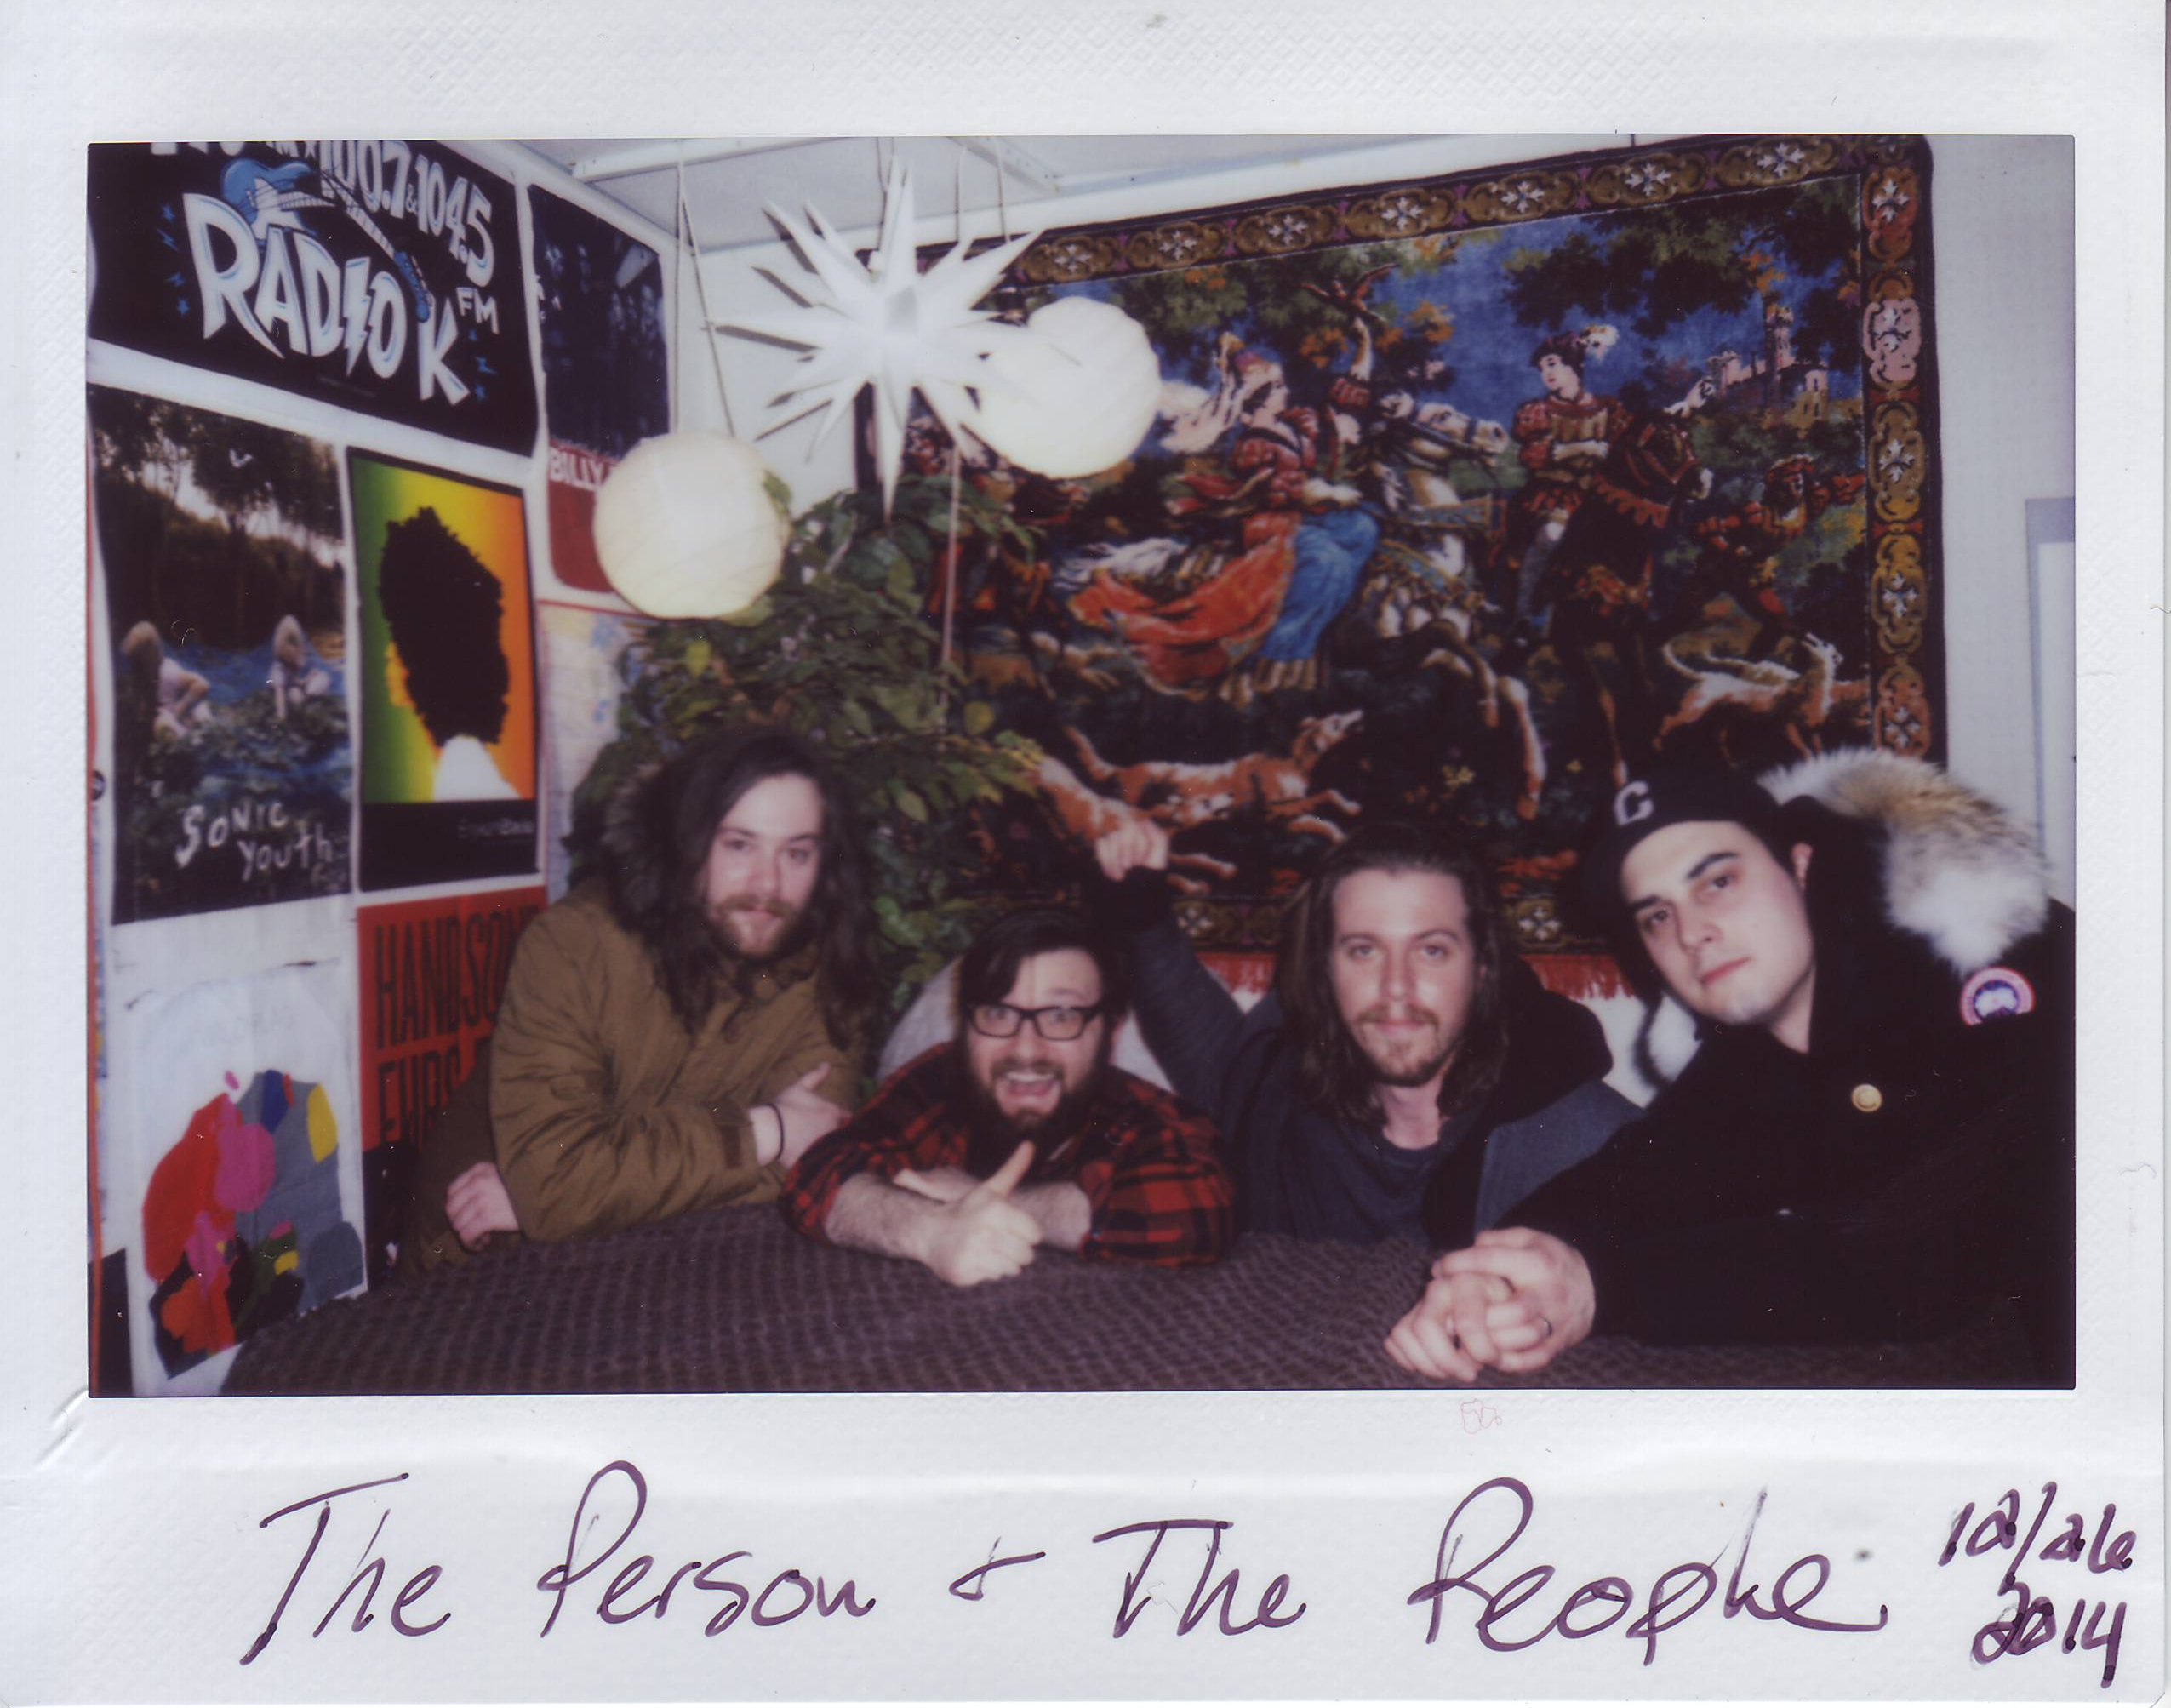 The Person & the People